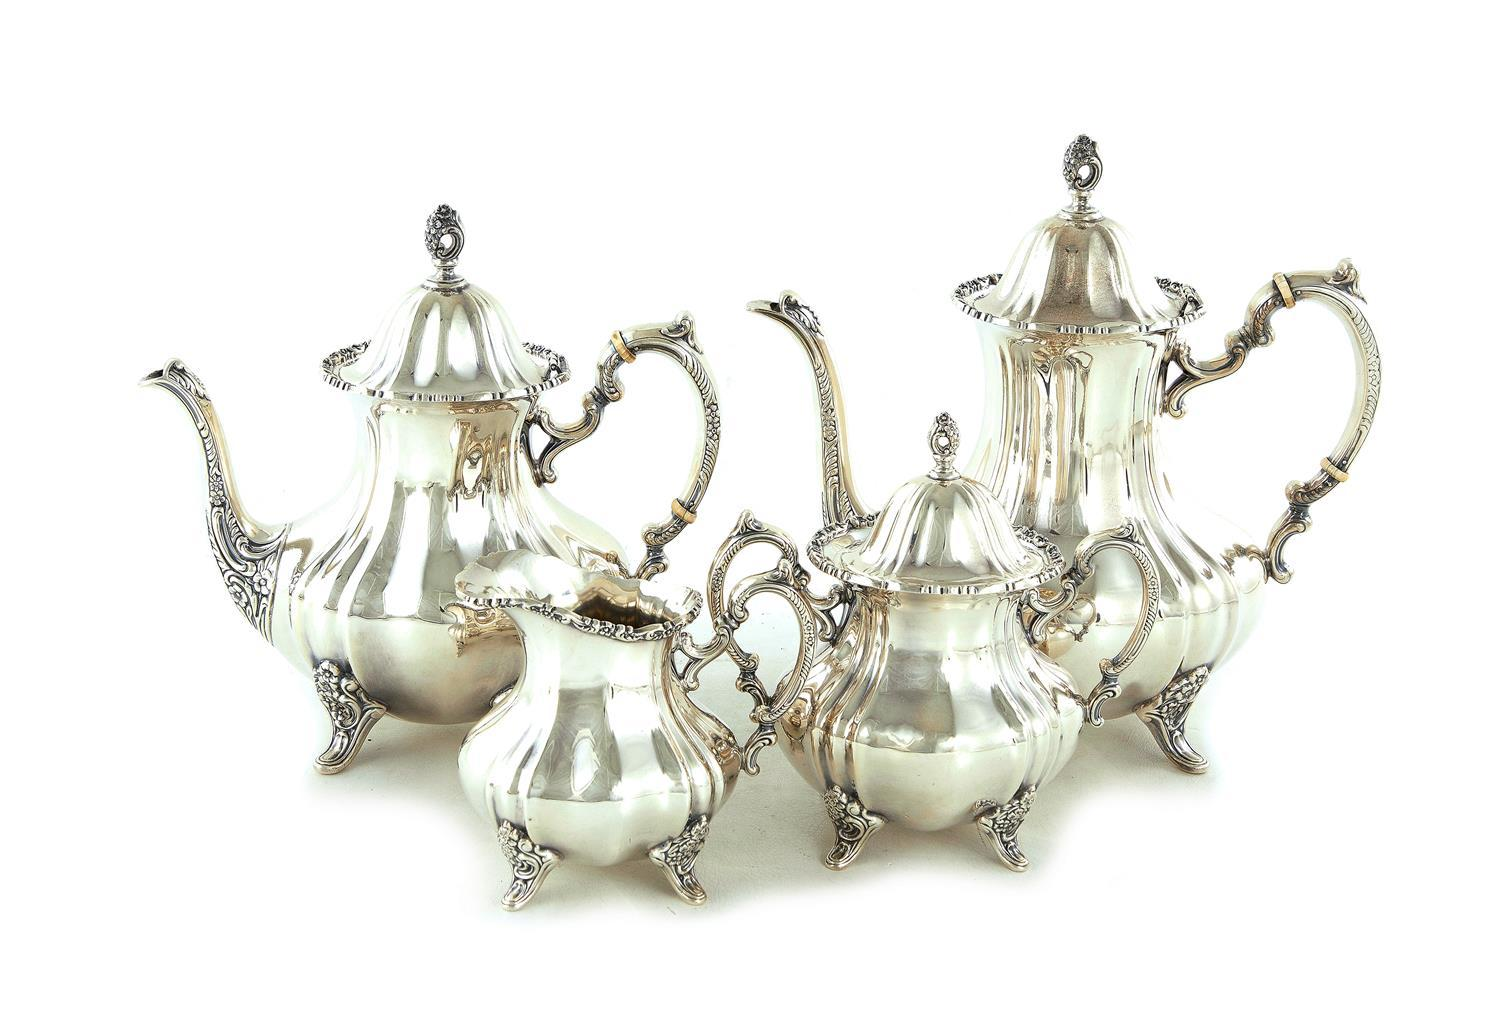 American silver tea and coffee service, by Poole (4pcs)